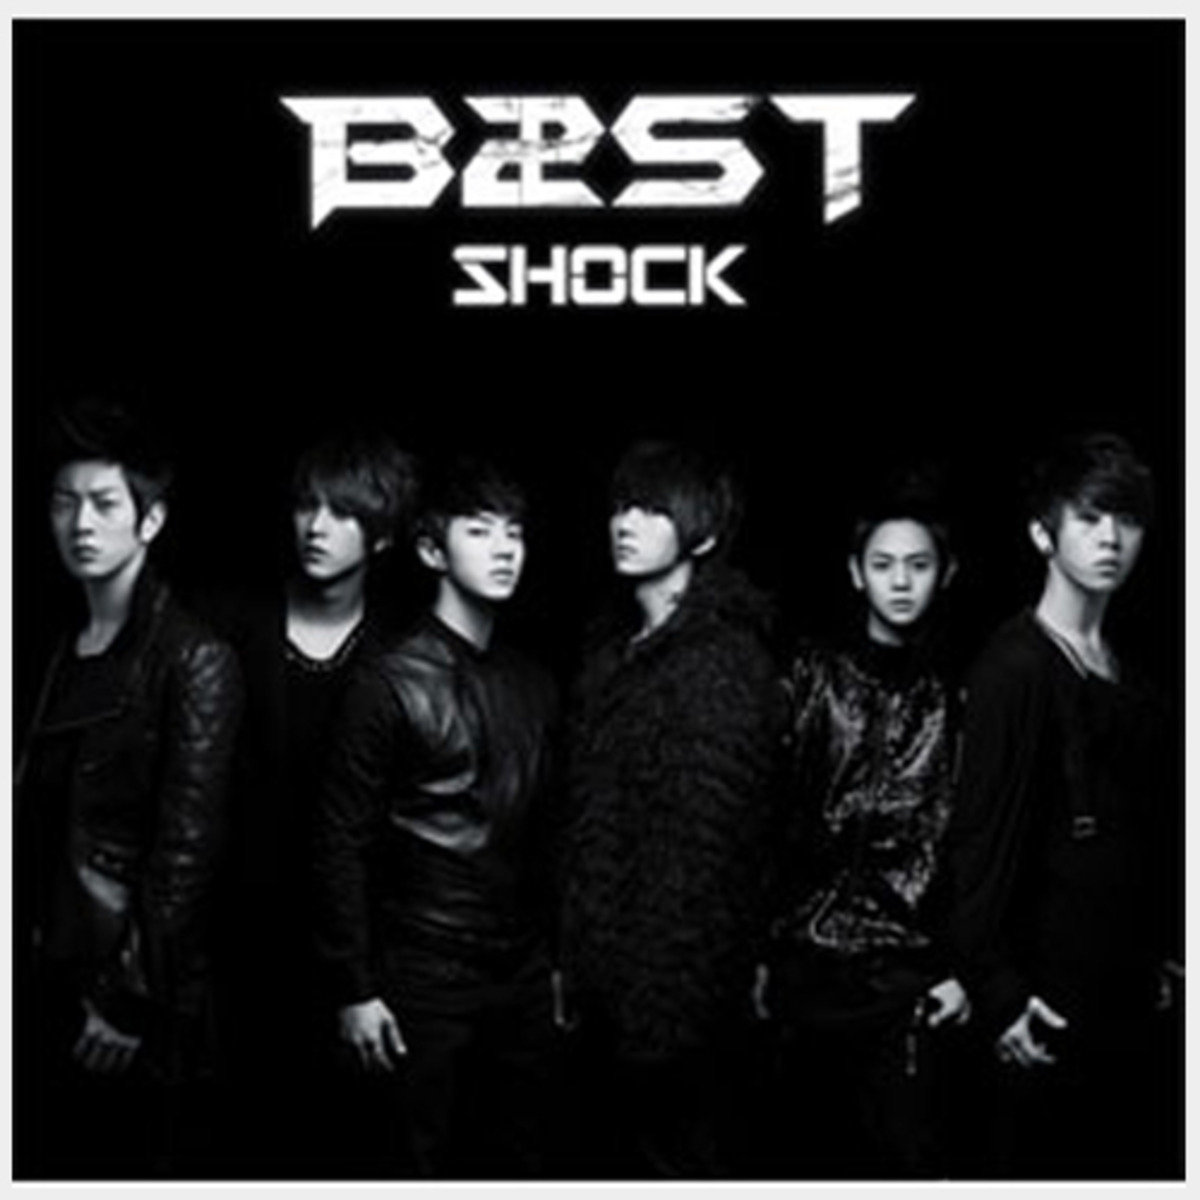 Beast - Shock [Limited Japan Video (A)Version](CD+DVD)_33751